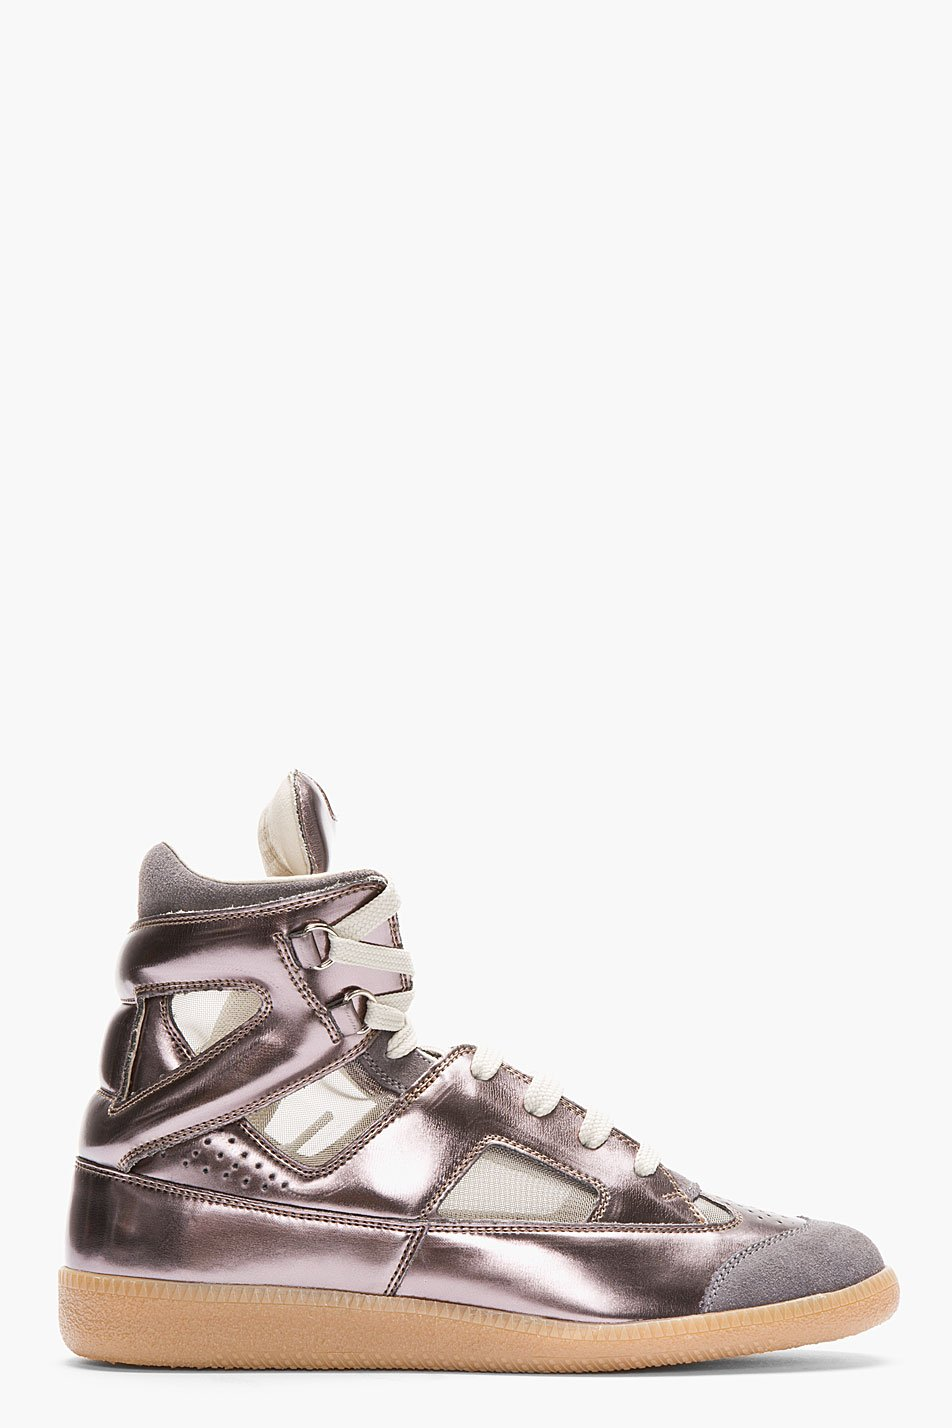 Maison martin margiela ssense exclusive pewter replica for Replica maison martin margiela